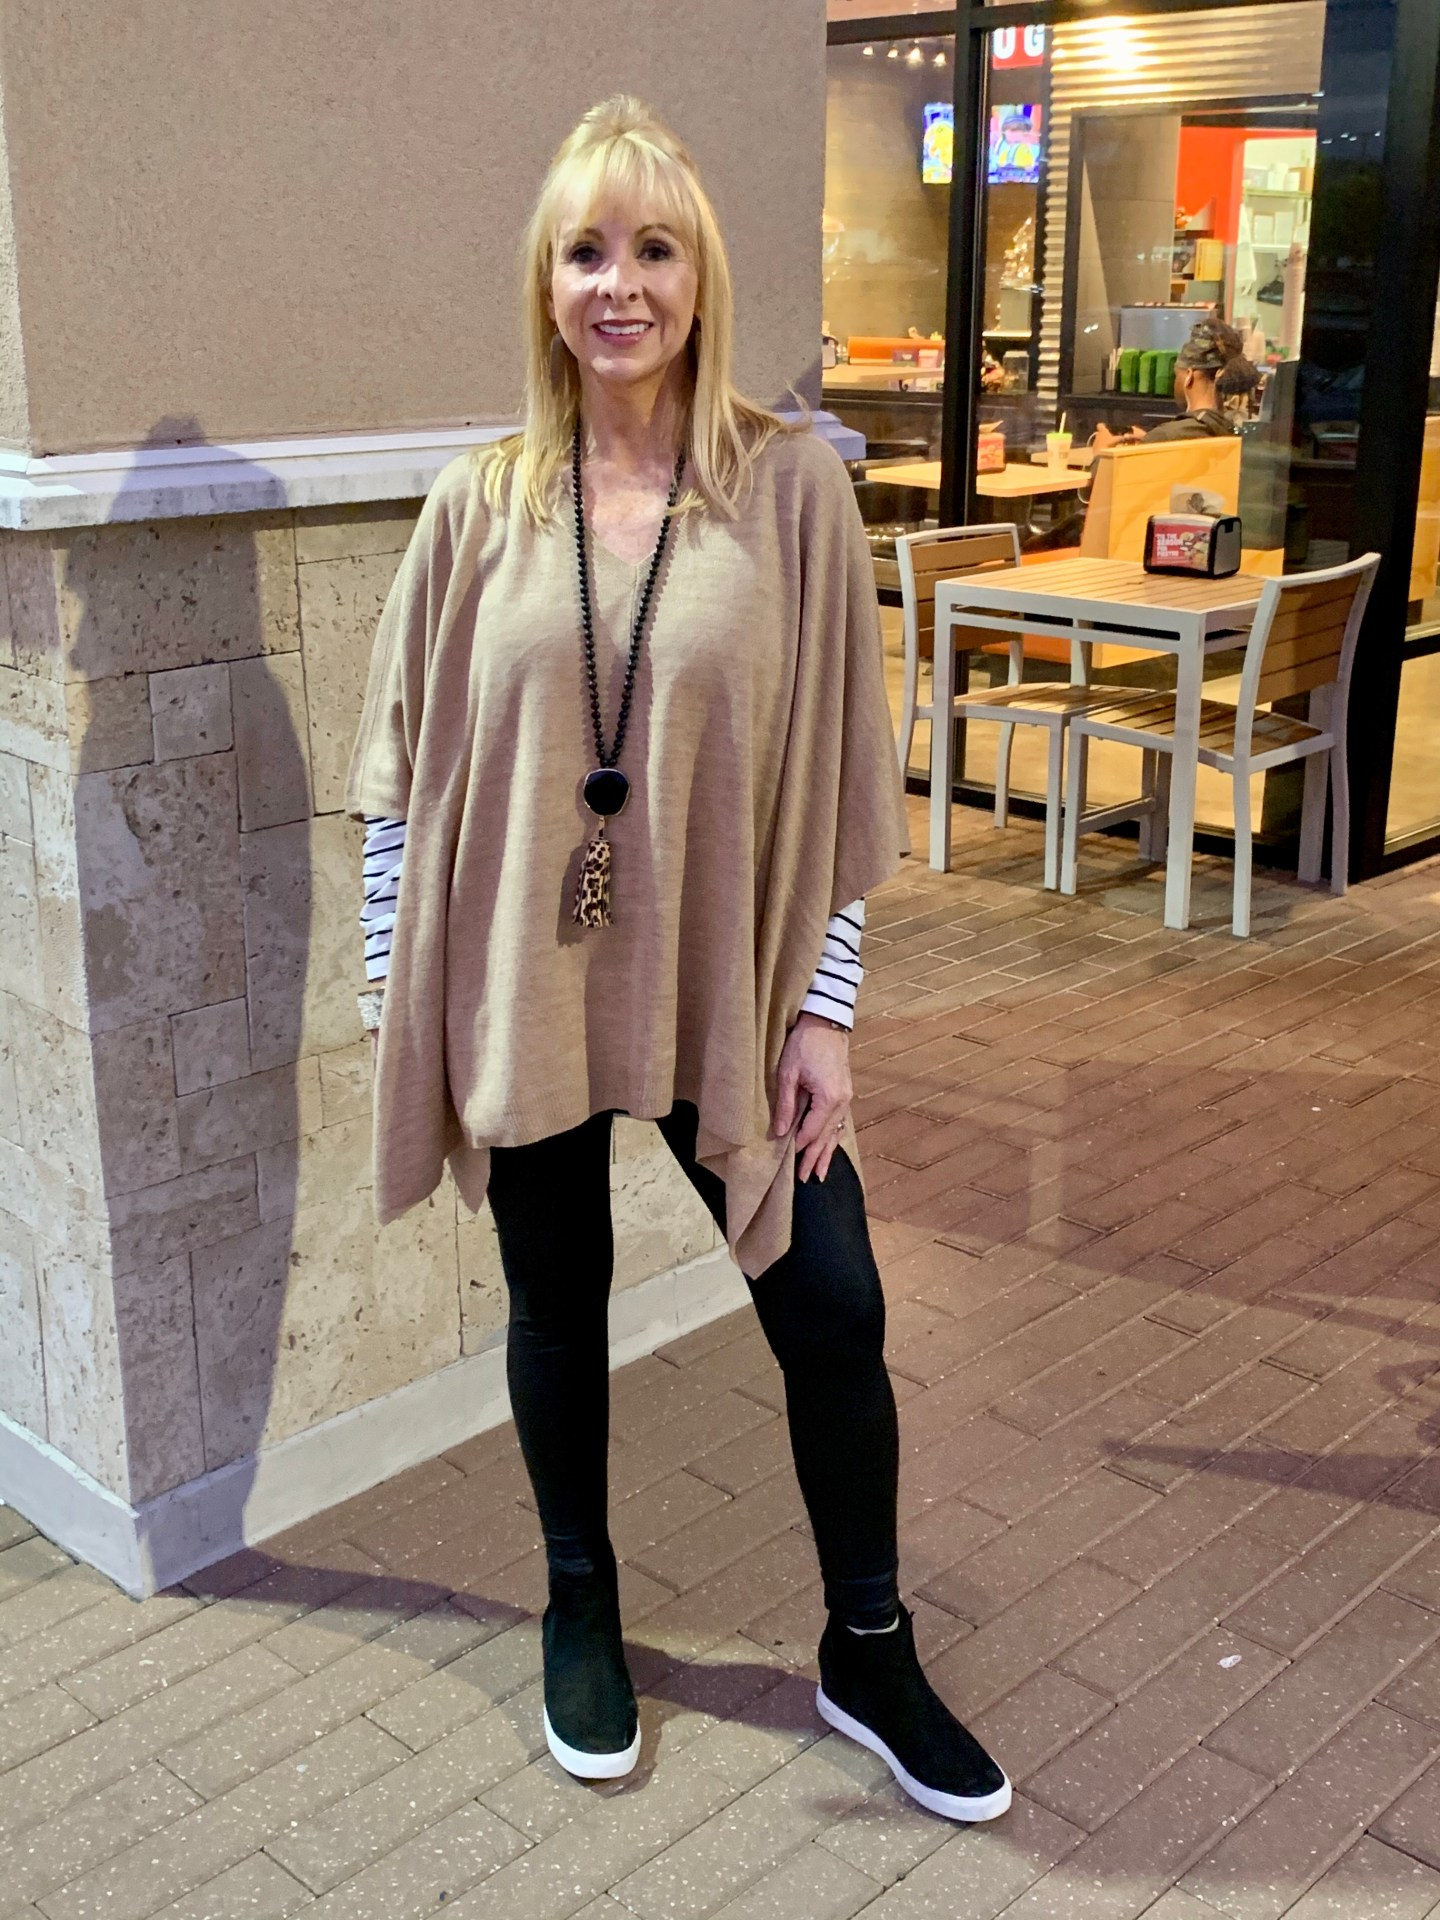 Poncho + Faux Leather Leggings + Wedge Sneakers